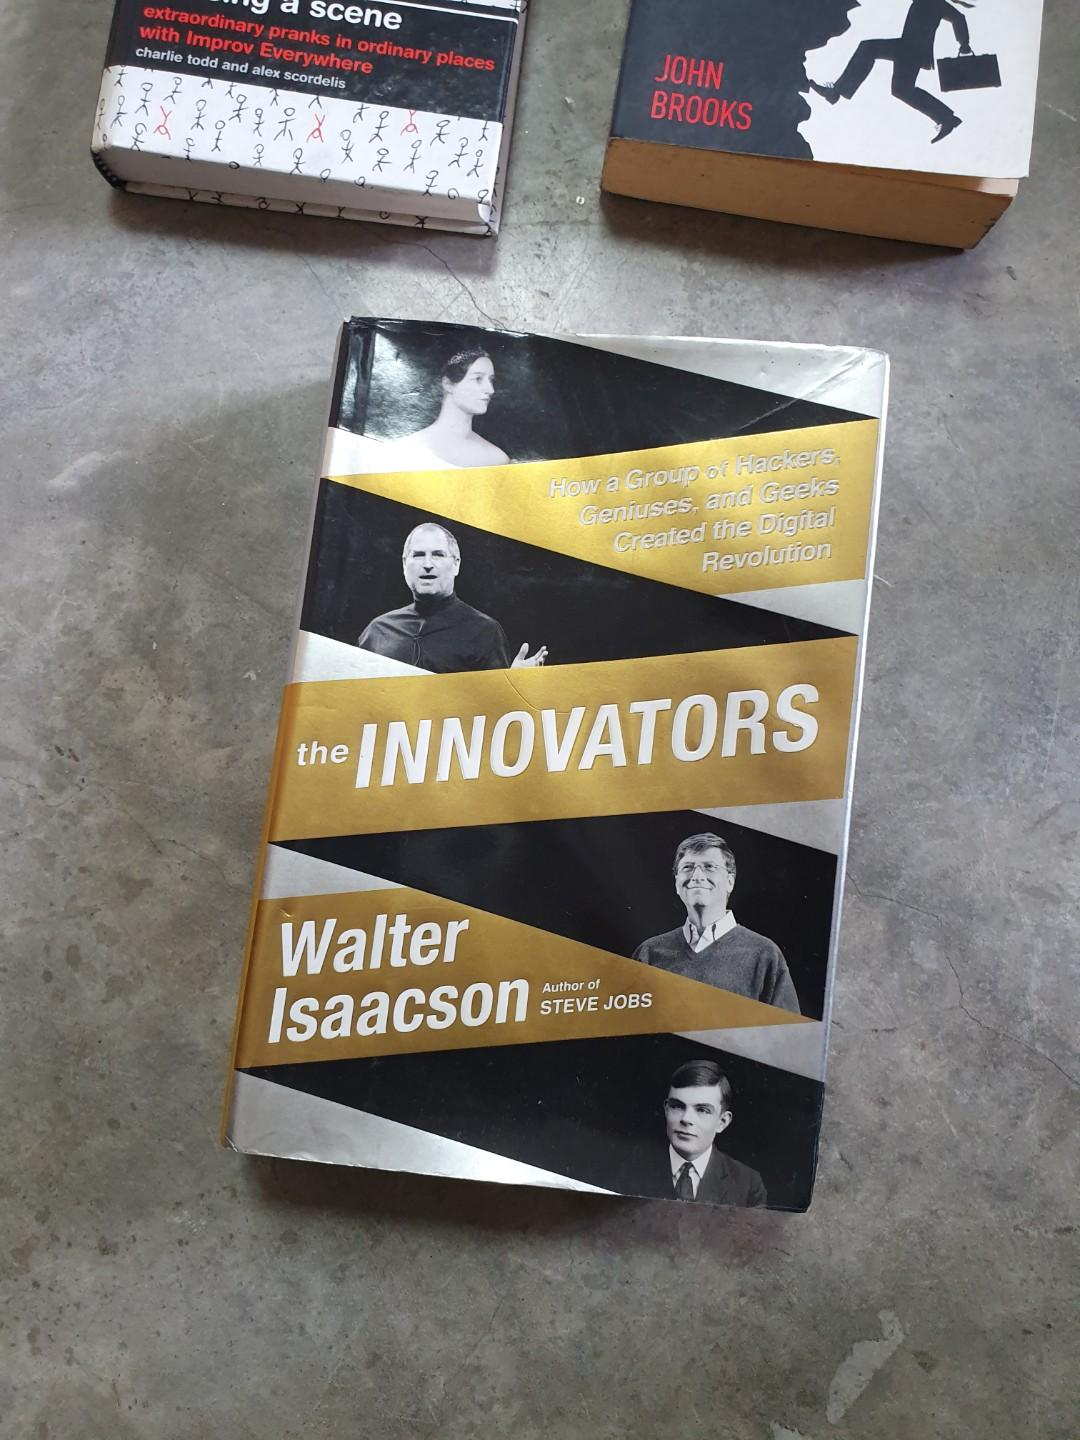 The Innovators, Business Adventures & Causing a Scene by Improv Everywhere